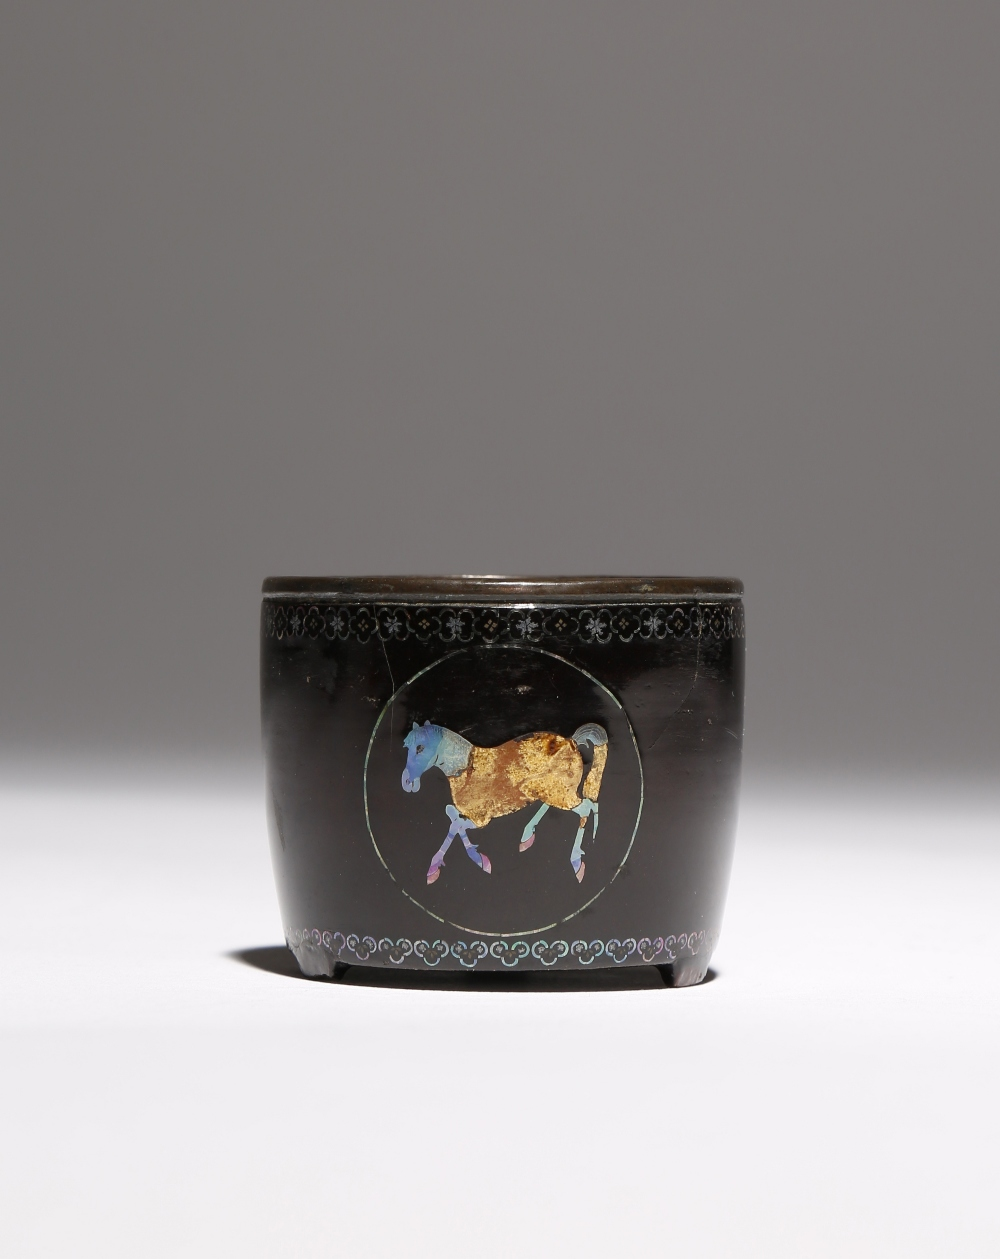 A SMALL CHINESE MOTHER OF PEARL INLAID LACQUER BOWL 18TH CENTURY Raised on three short feet,